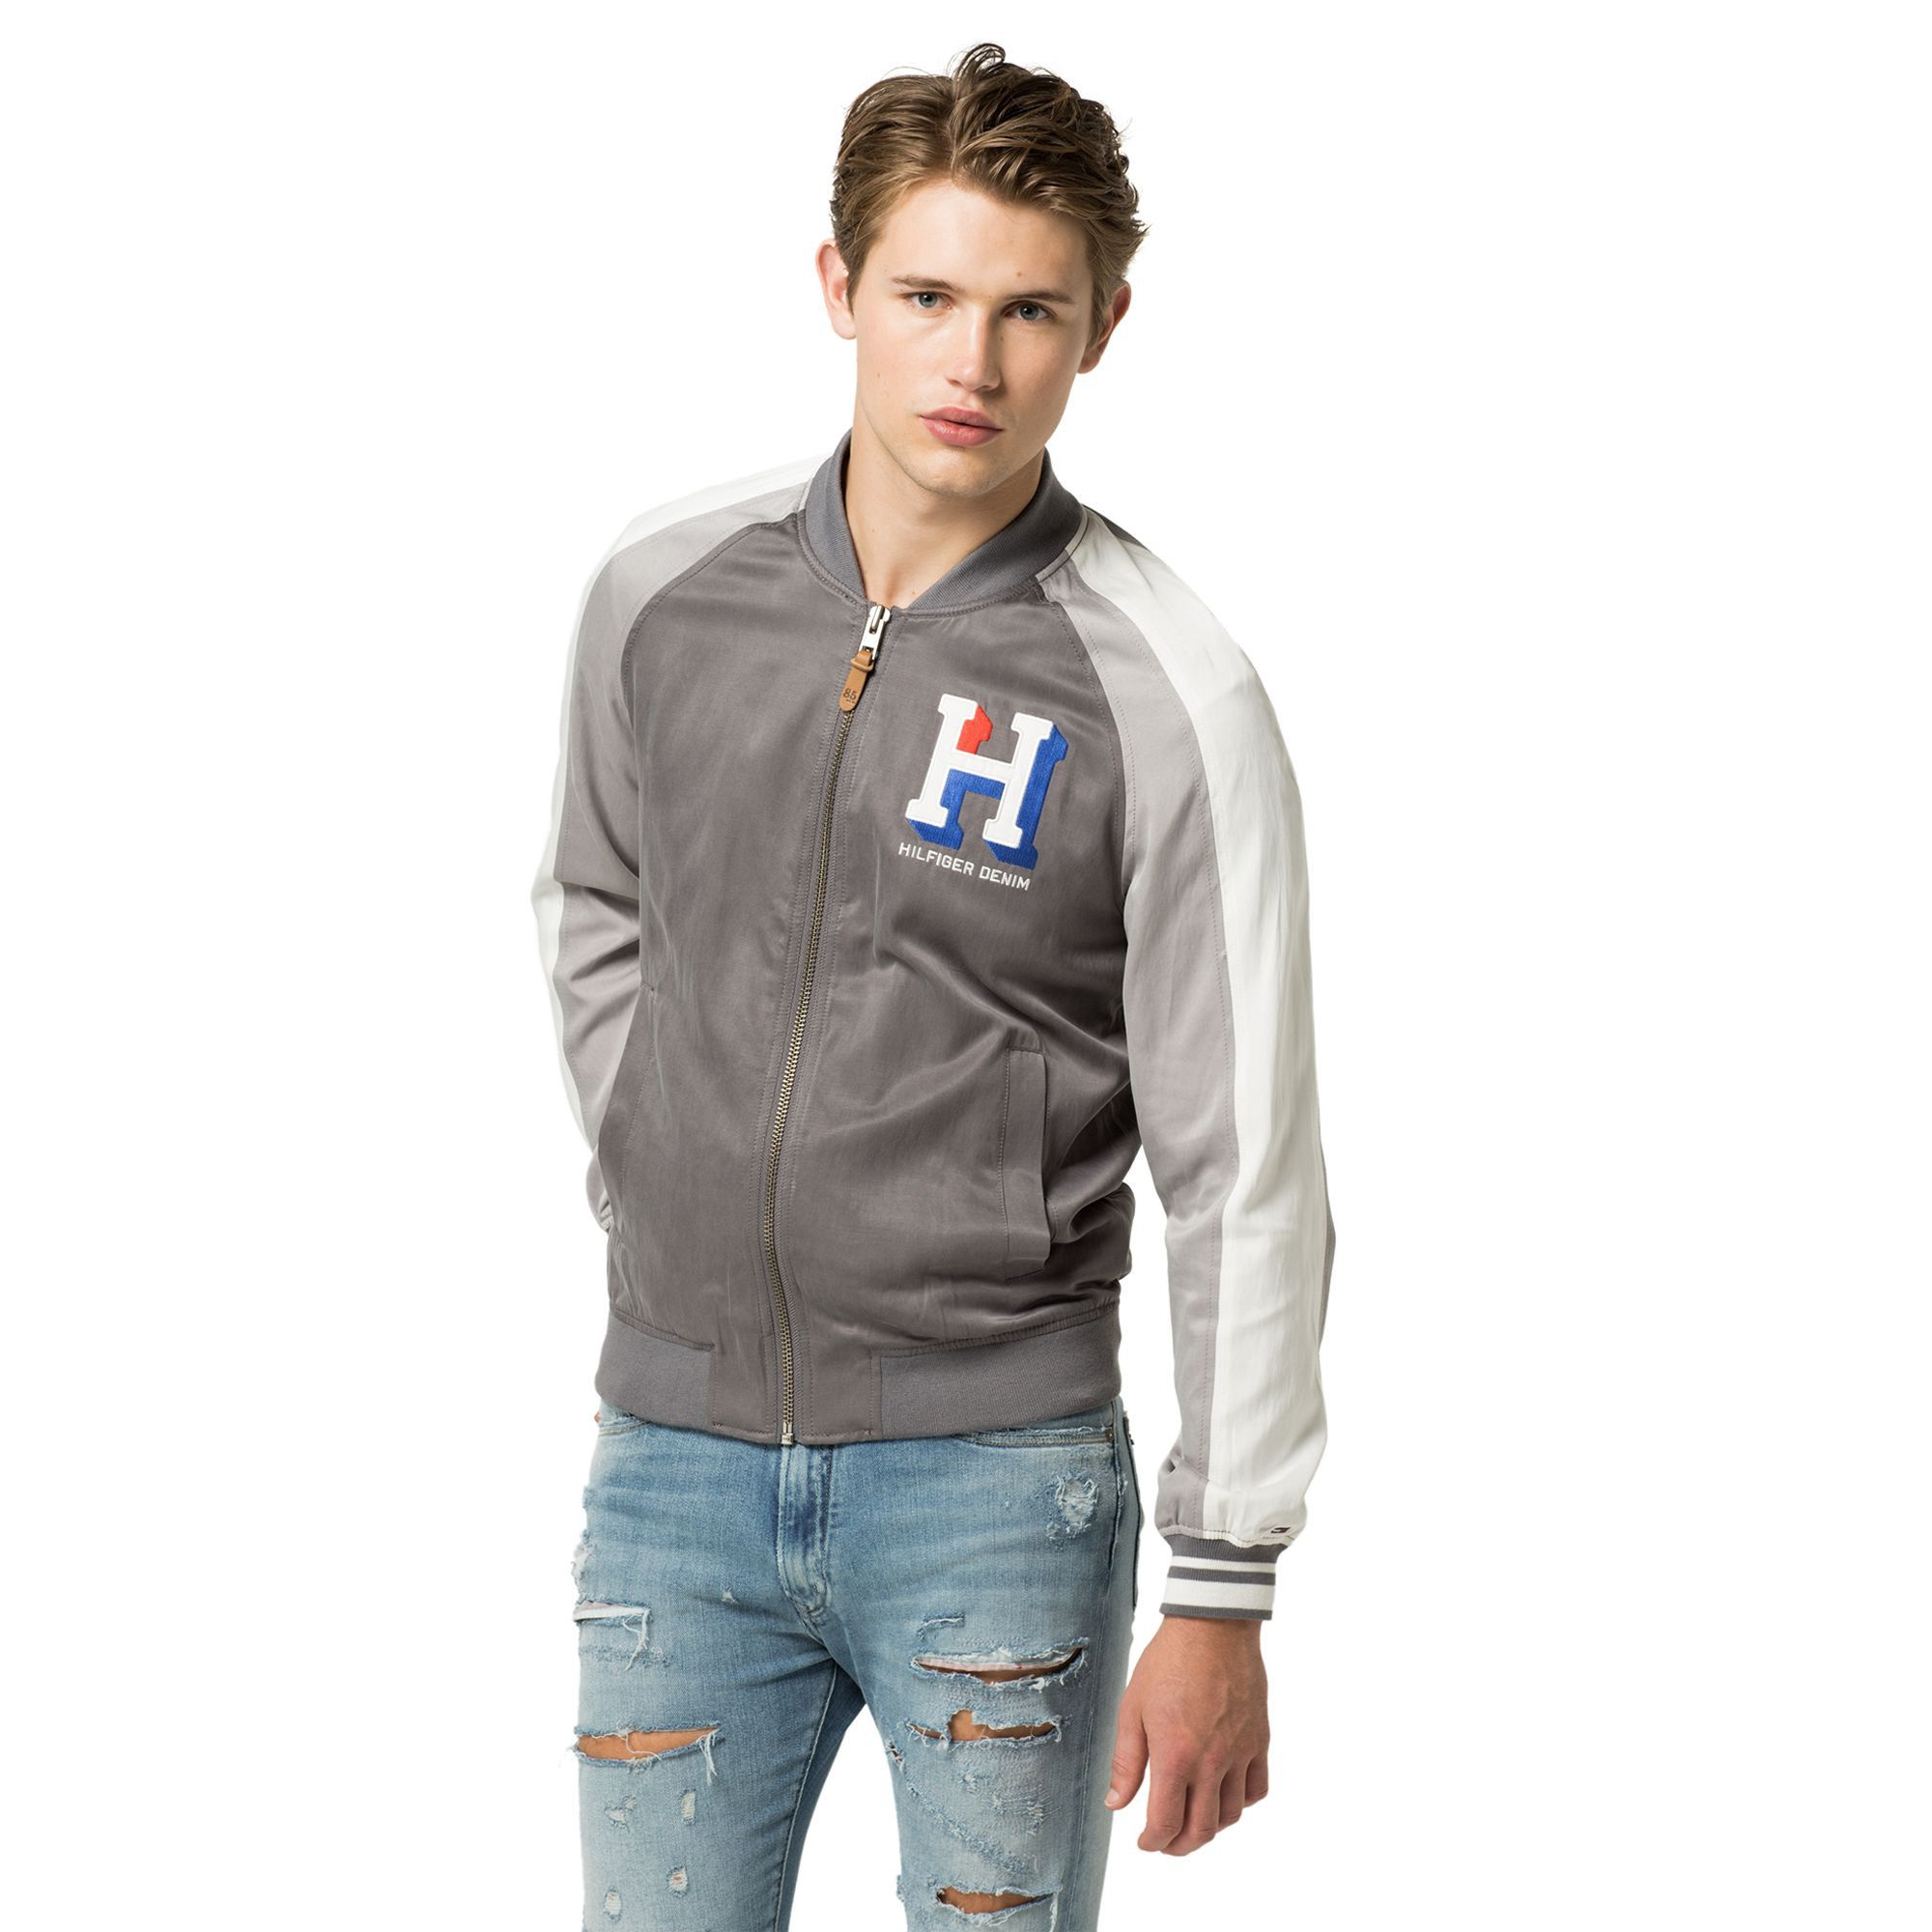 TOMMY HILFIGER VARSITY BOMBER JACKET SMOKED PEARL MULTI